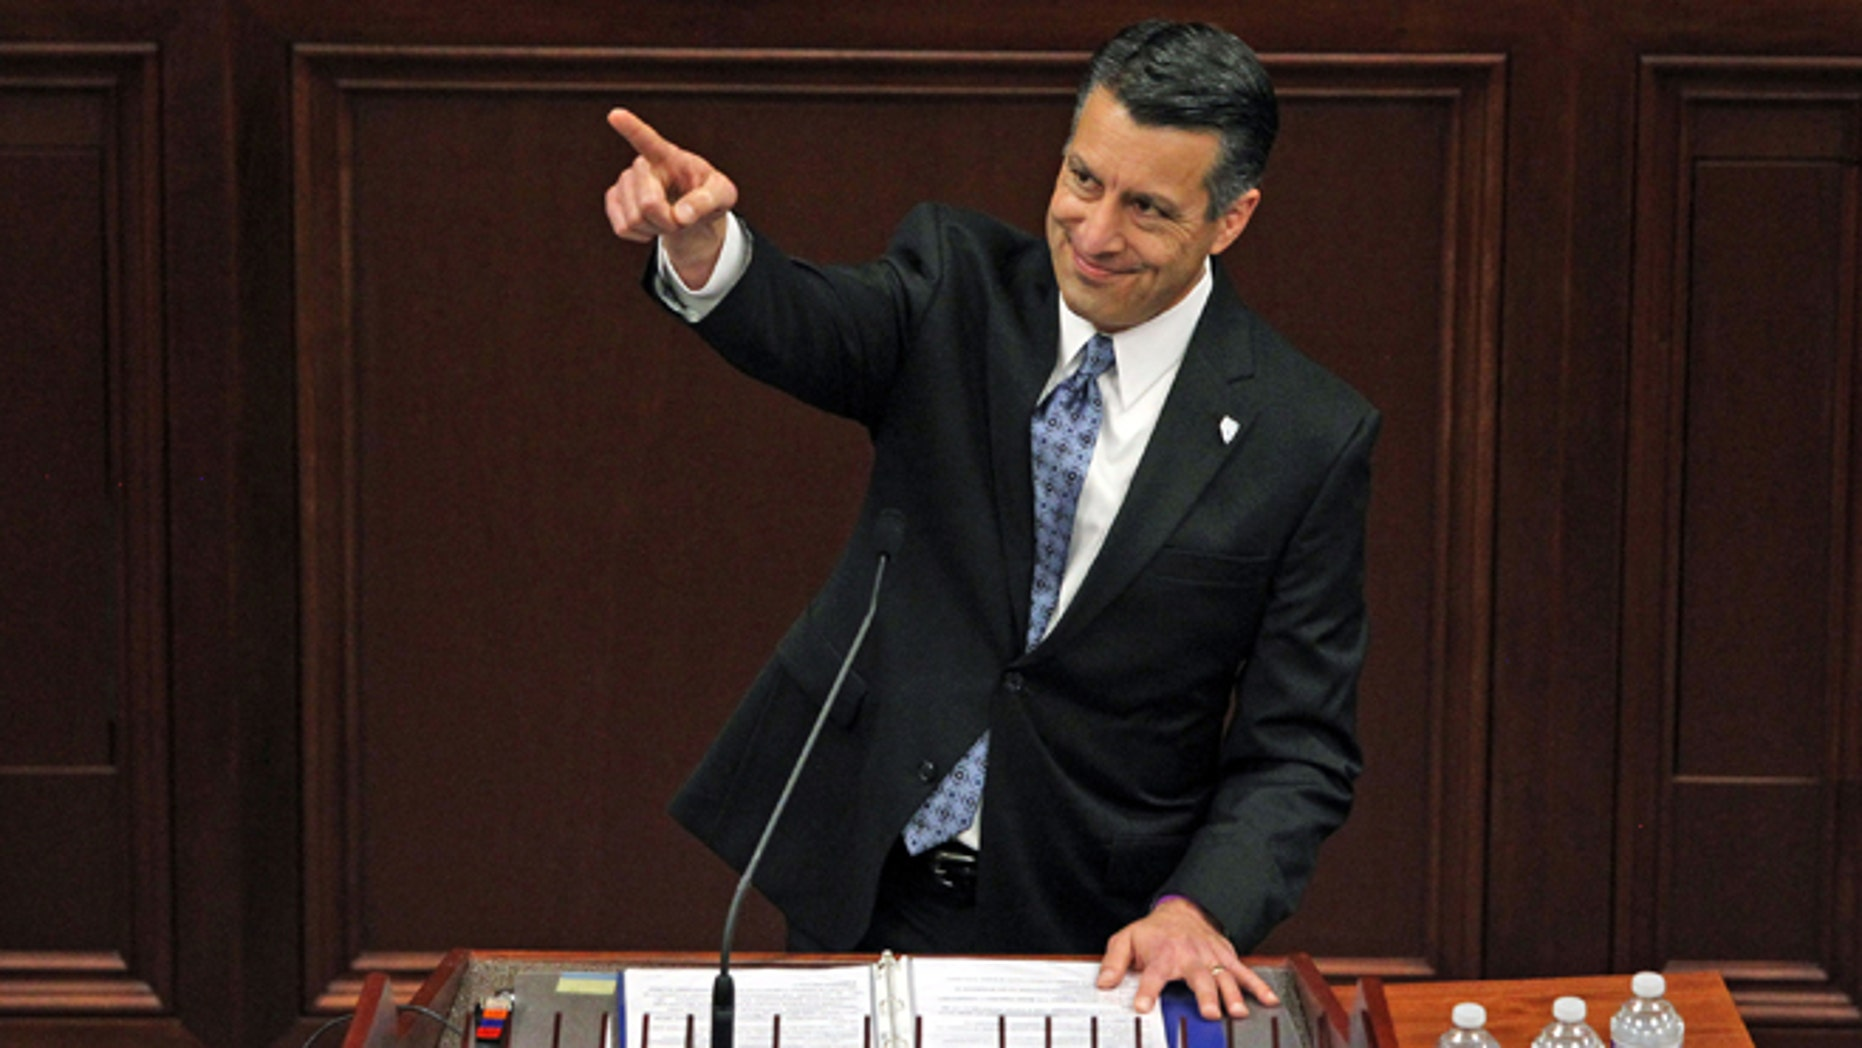 File - In a Thursday, Jan. 15, 2015 file photo, Nevada Gov. Brian Sandoval acknowledges a guest in the gallery during his State of the State address inside the Legislature building on the capital grounds in Carson City, Nev. Sandoval, who swept in to office with 71 percent of the vote, faces anger from other elected constitutional officers and several conservative Assembly members upset with his $7.3 billion, two-year budget that includes $1.1 billion in new and extended taxes.  (AP Photo/Lance Iversen, File)